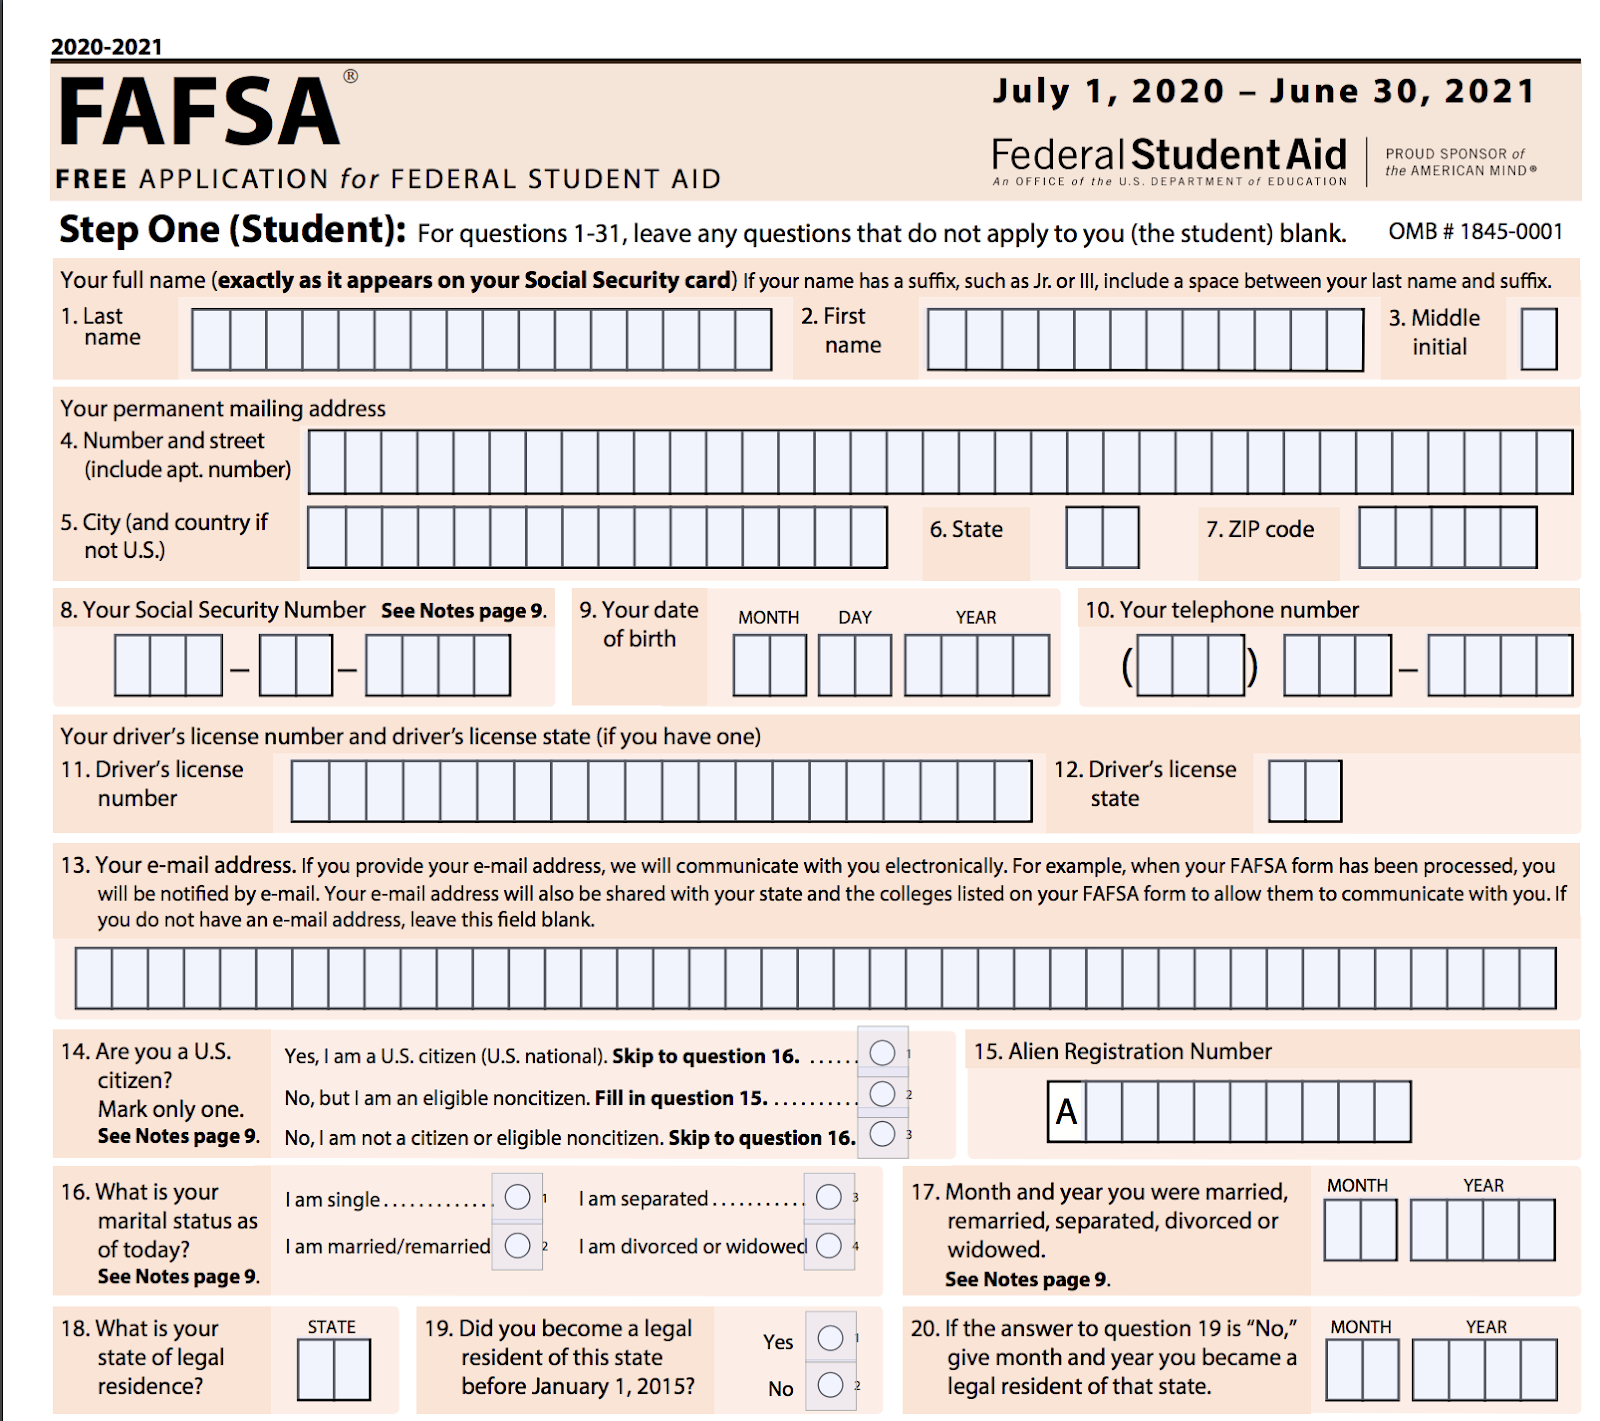 Screenshot of FAFSA form for 2020/21 academic year.